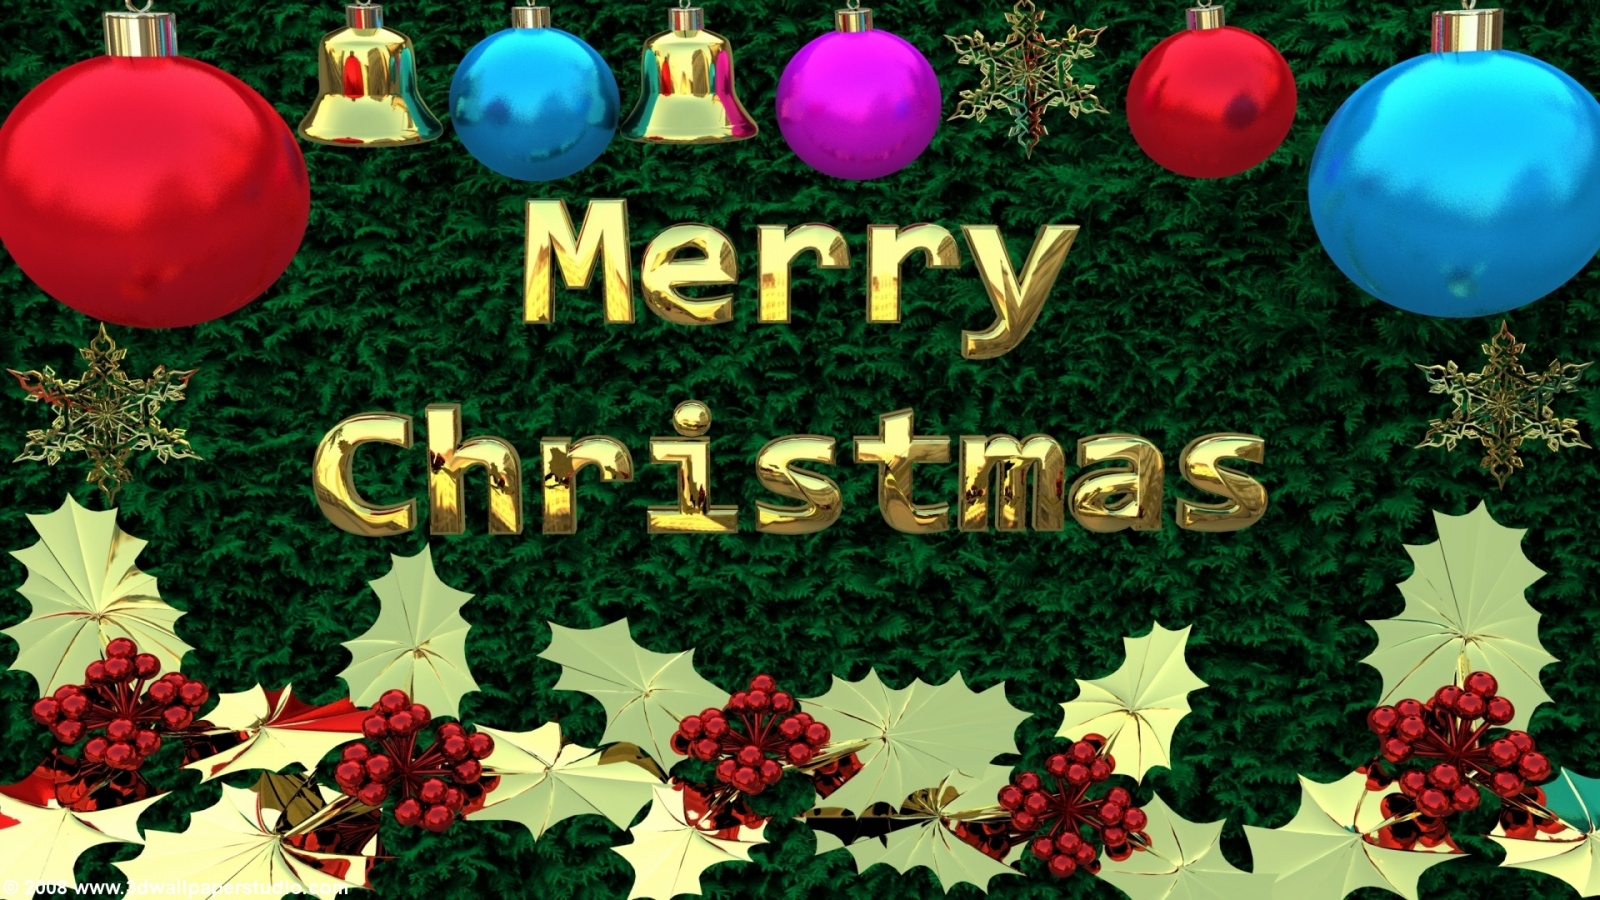 Merry Christmas wallpaper in 1600x900 screen resolution 1600x900